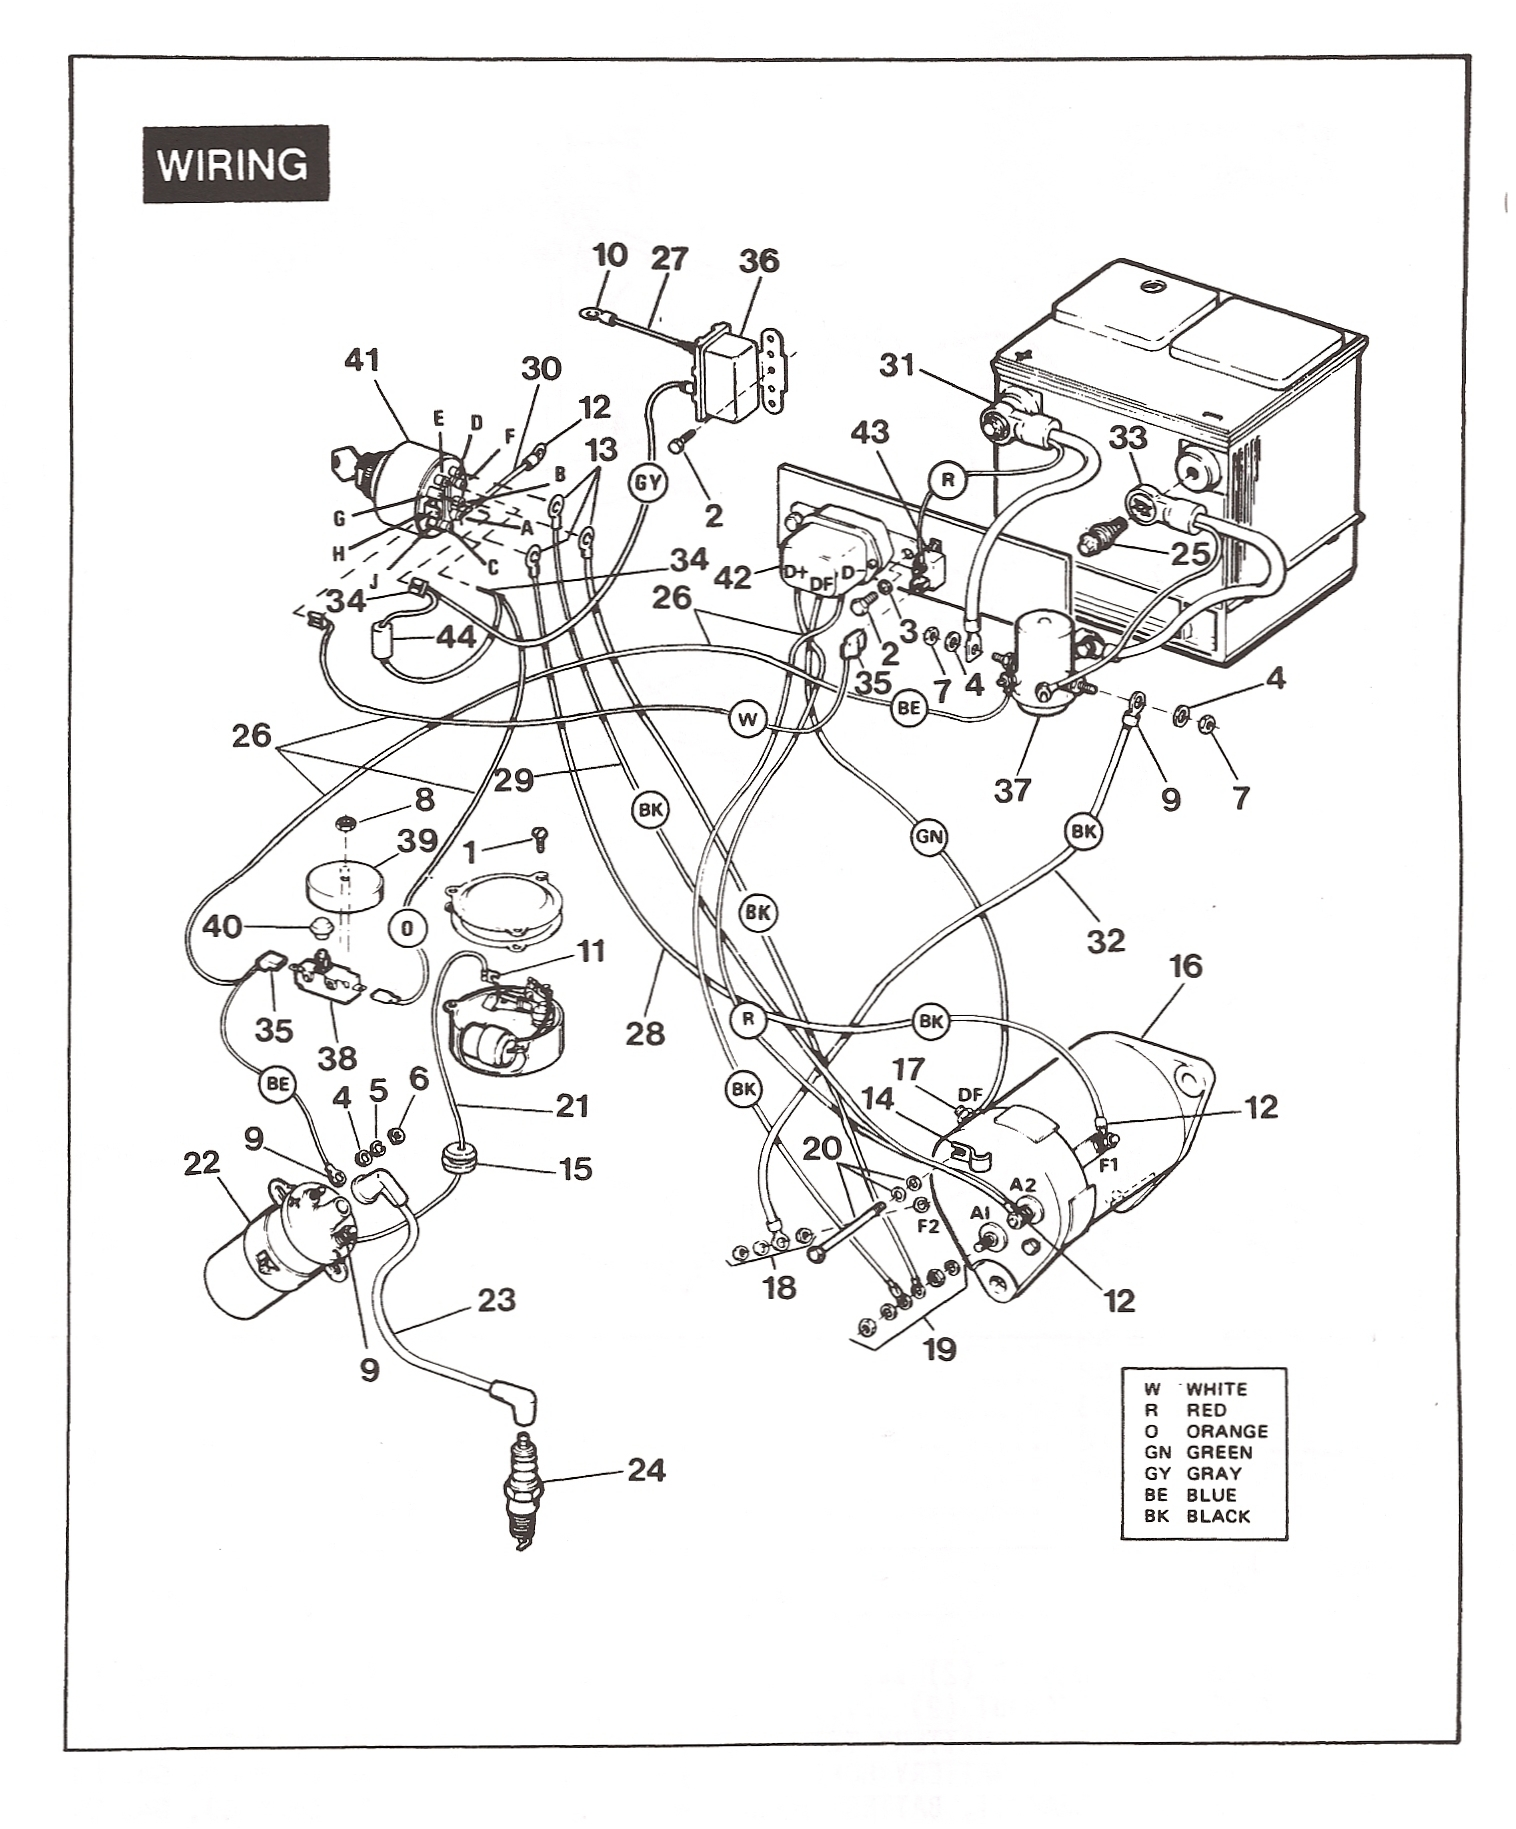 82_86_Columbia_Harley par car engine diagram par wiring diagrams instruction Yamaha Outboard Wiring Diagram at panicattacktreatment.co